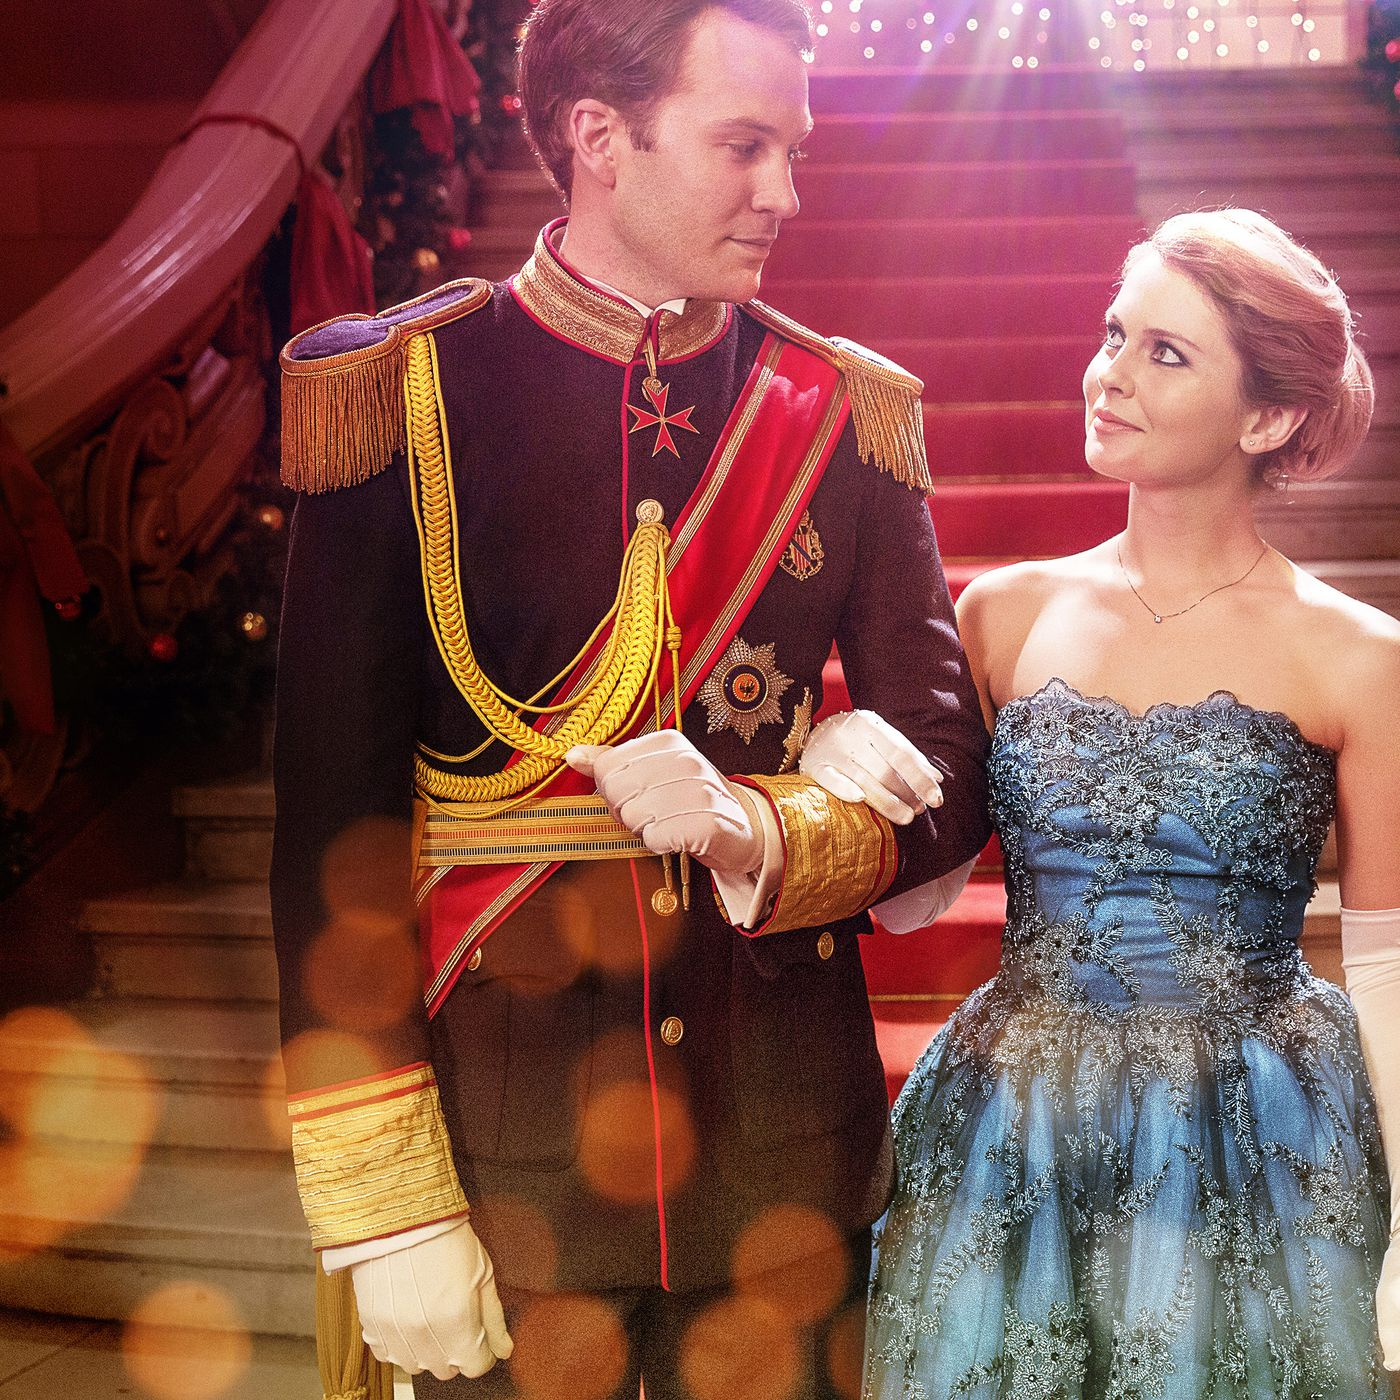 Prince For Christmas.An Argument For Watching A Christmas Prince 18 Days In A